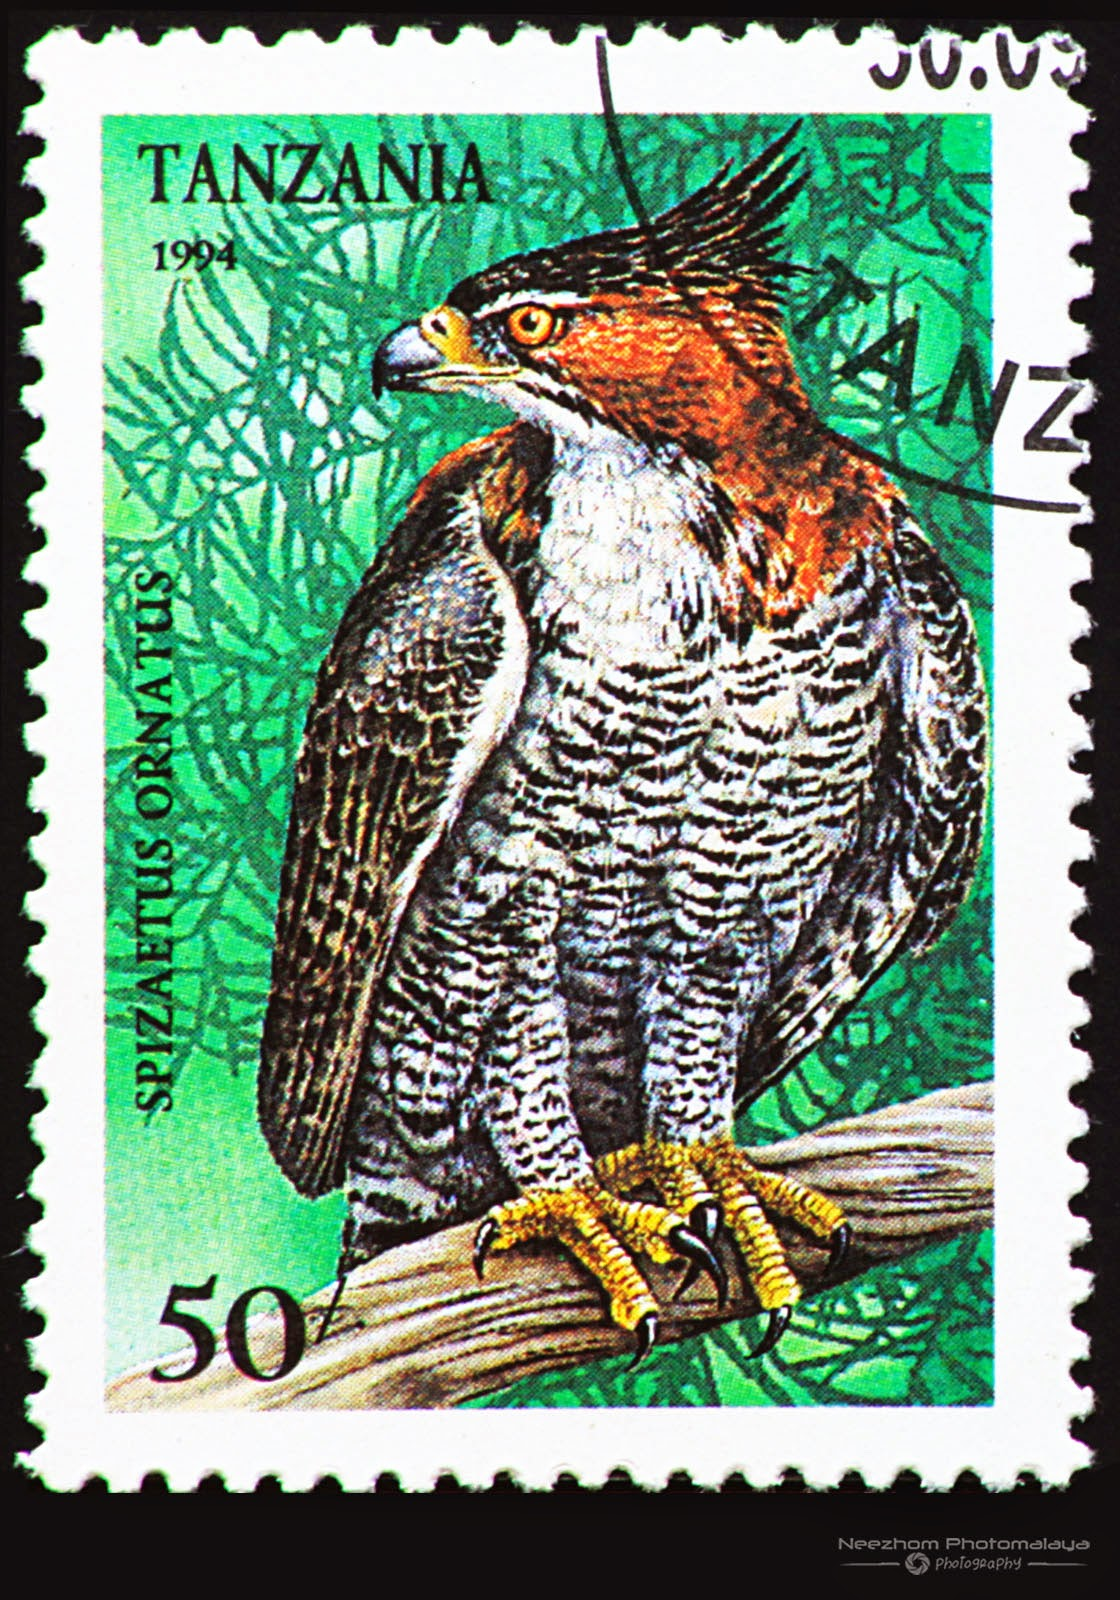 Tanzania 1994 Birds of Prey stamp - Ornate Hawk-Eagle (Spizaetus ornatus) 50 s